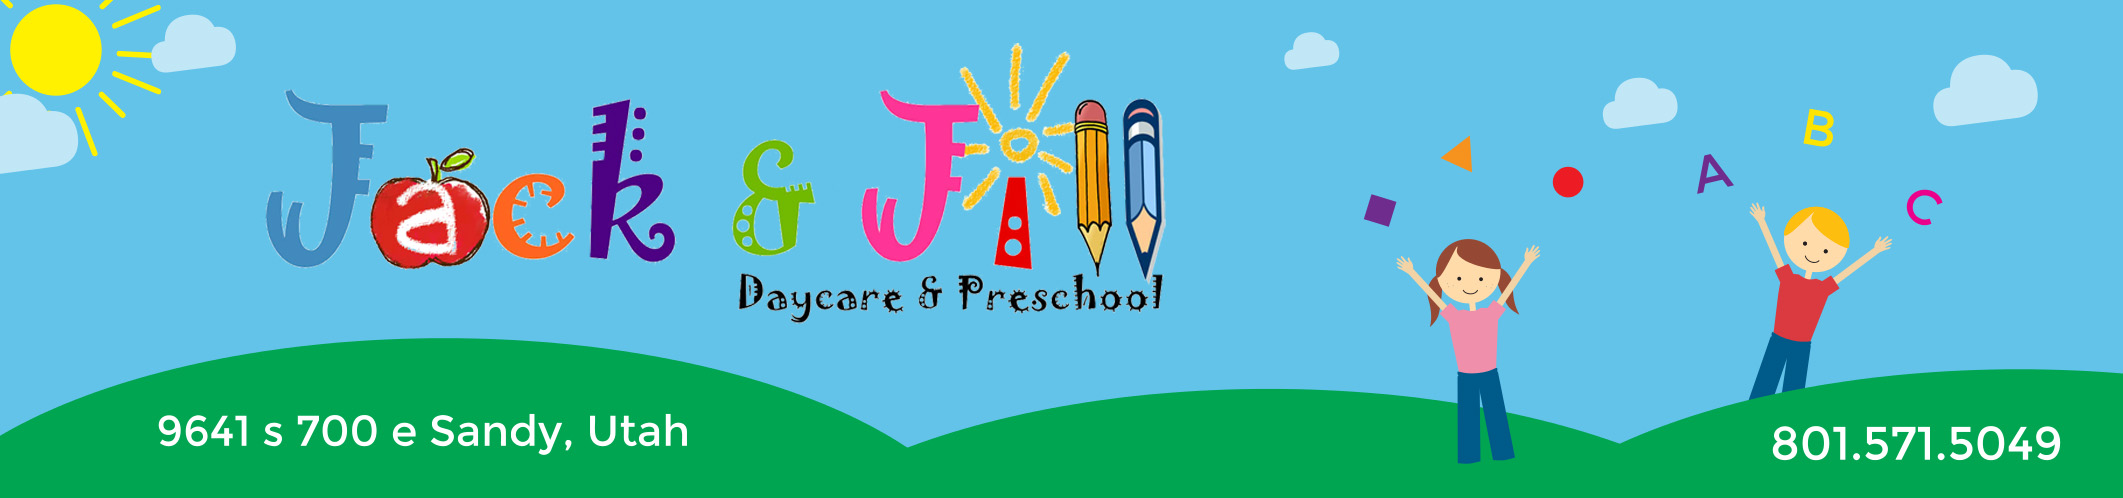 Jack and Jill Daycare/Preschool, LLC